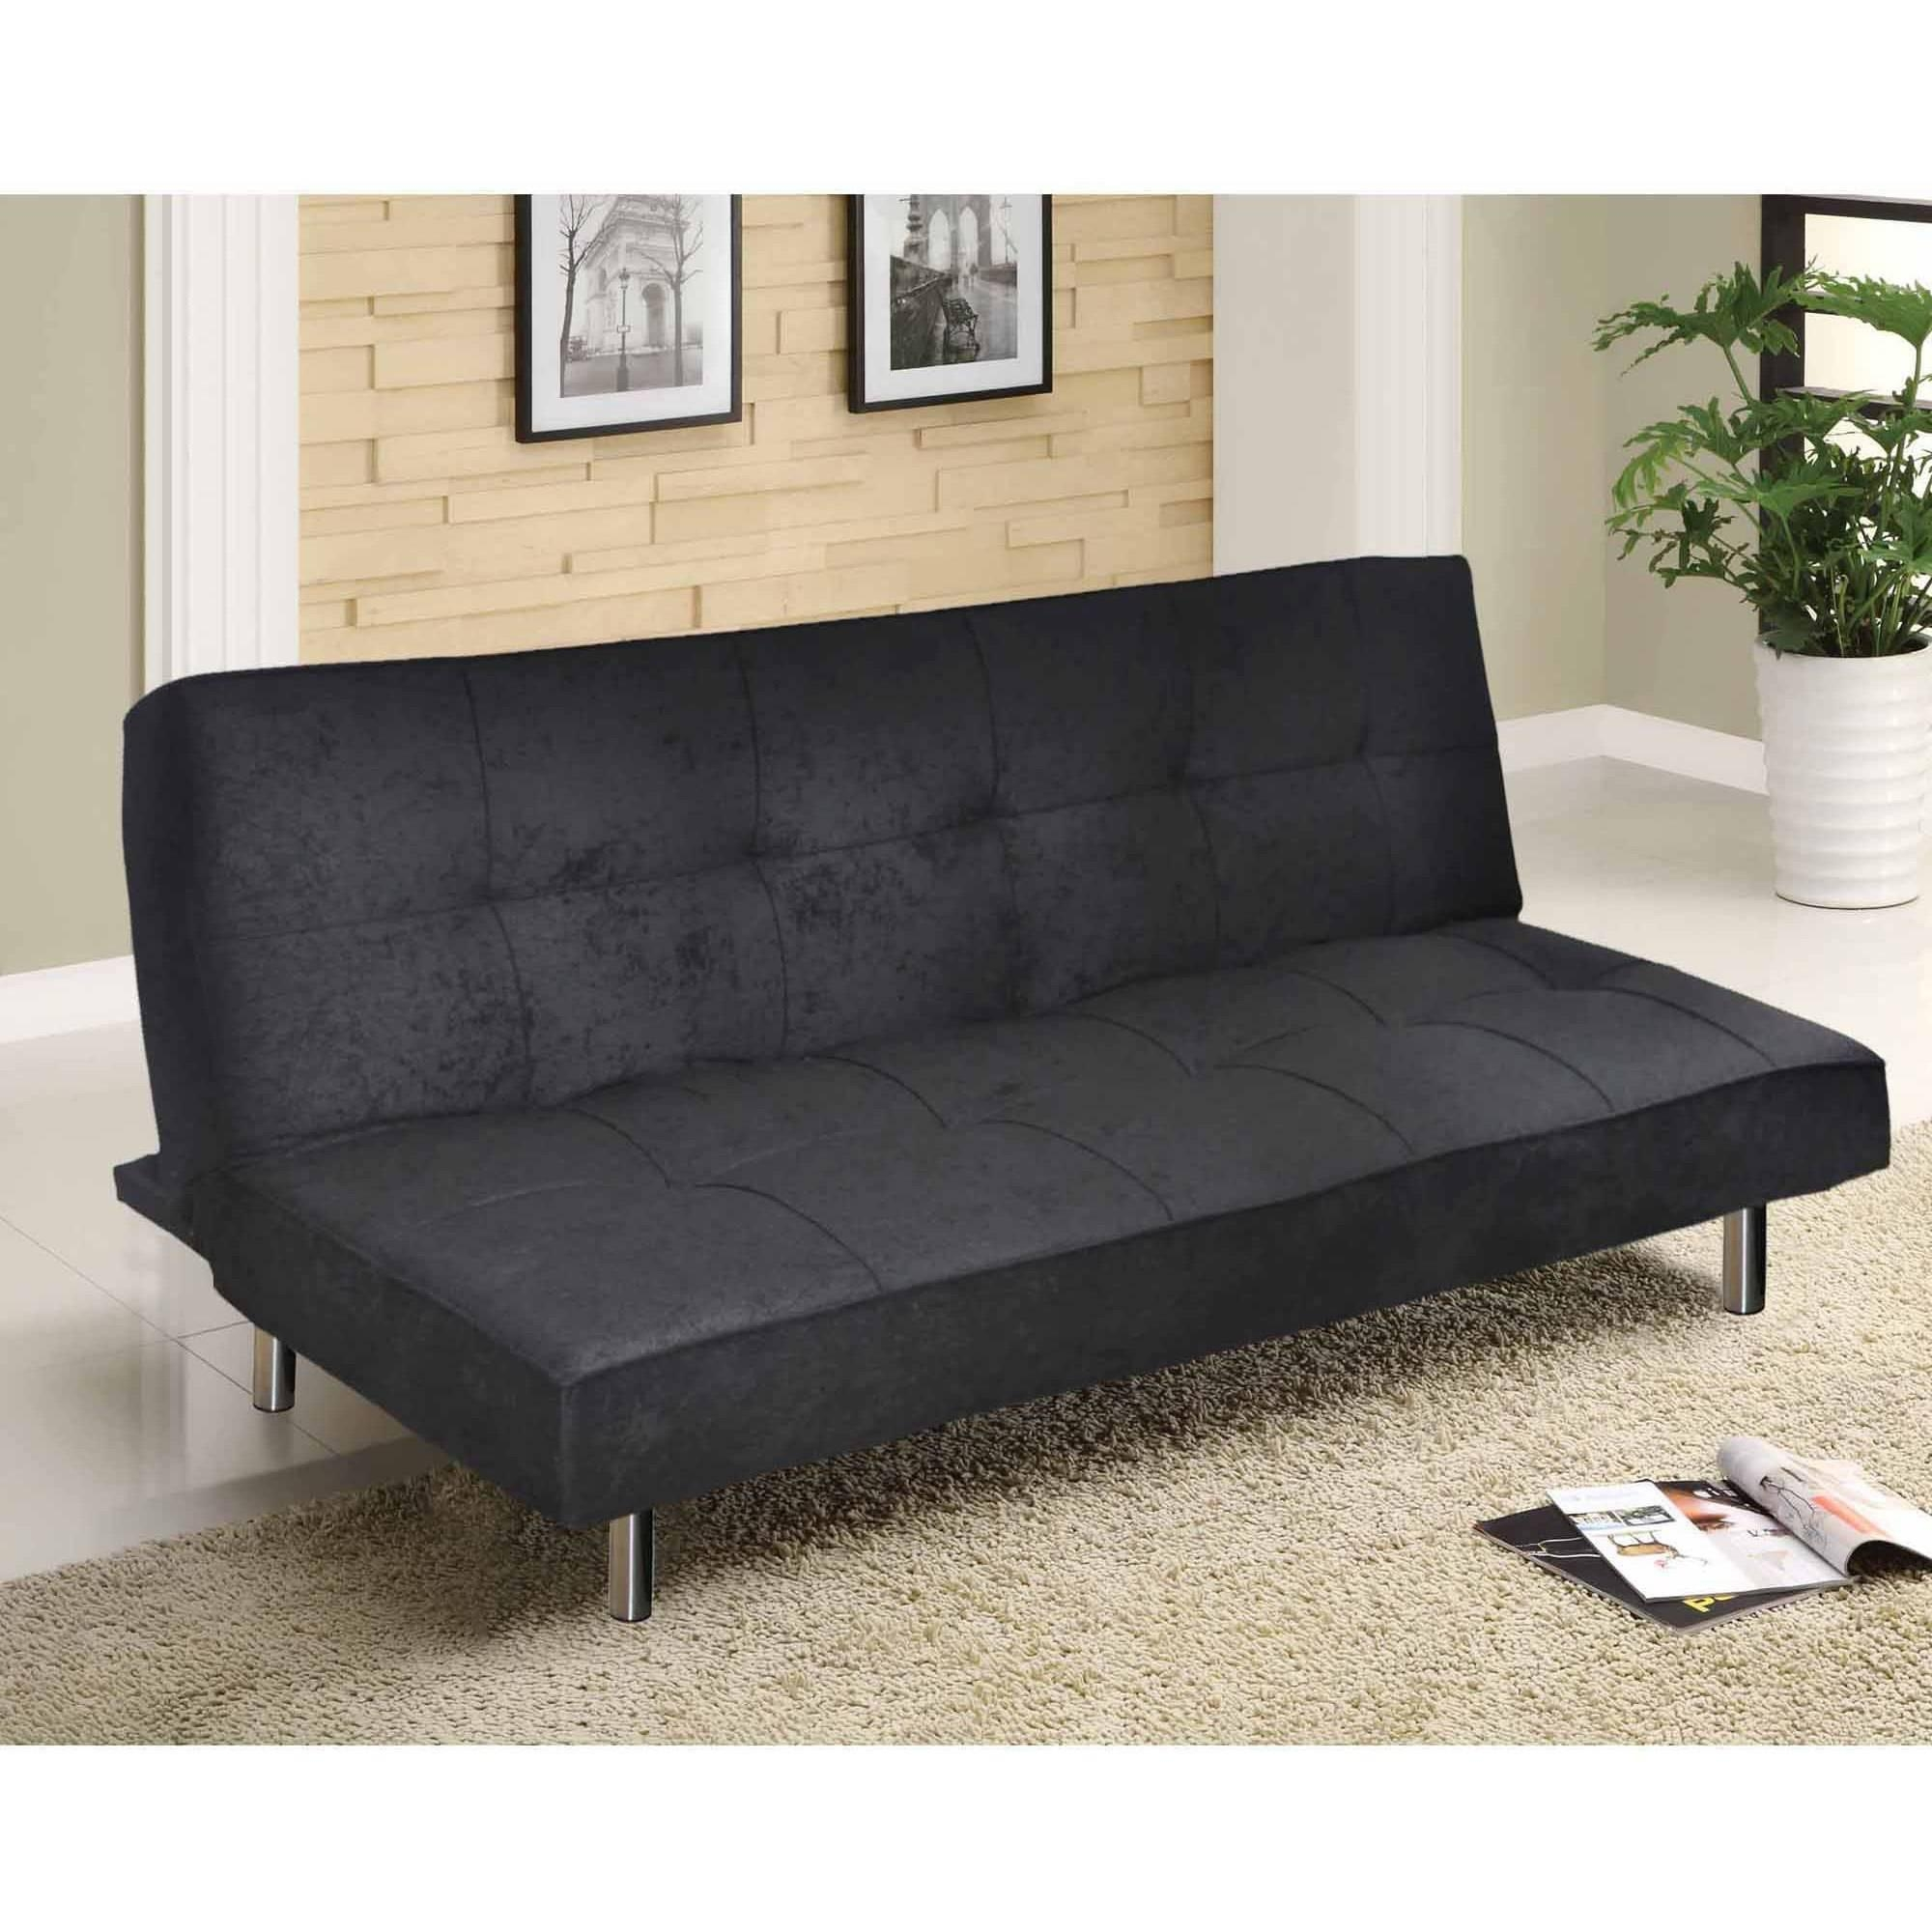 Modern Futon 20+ Choices Of Futon Couch Beds | Sofa Ideas